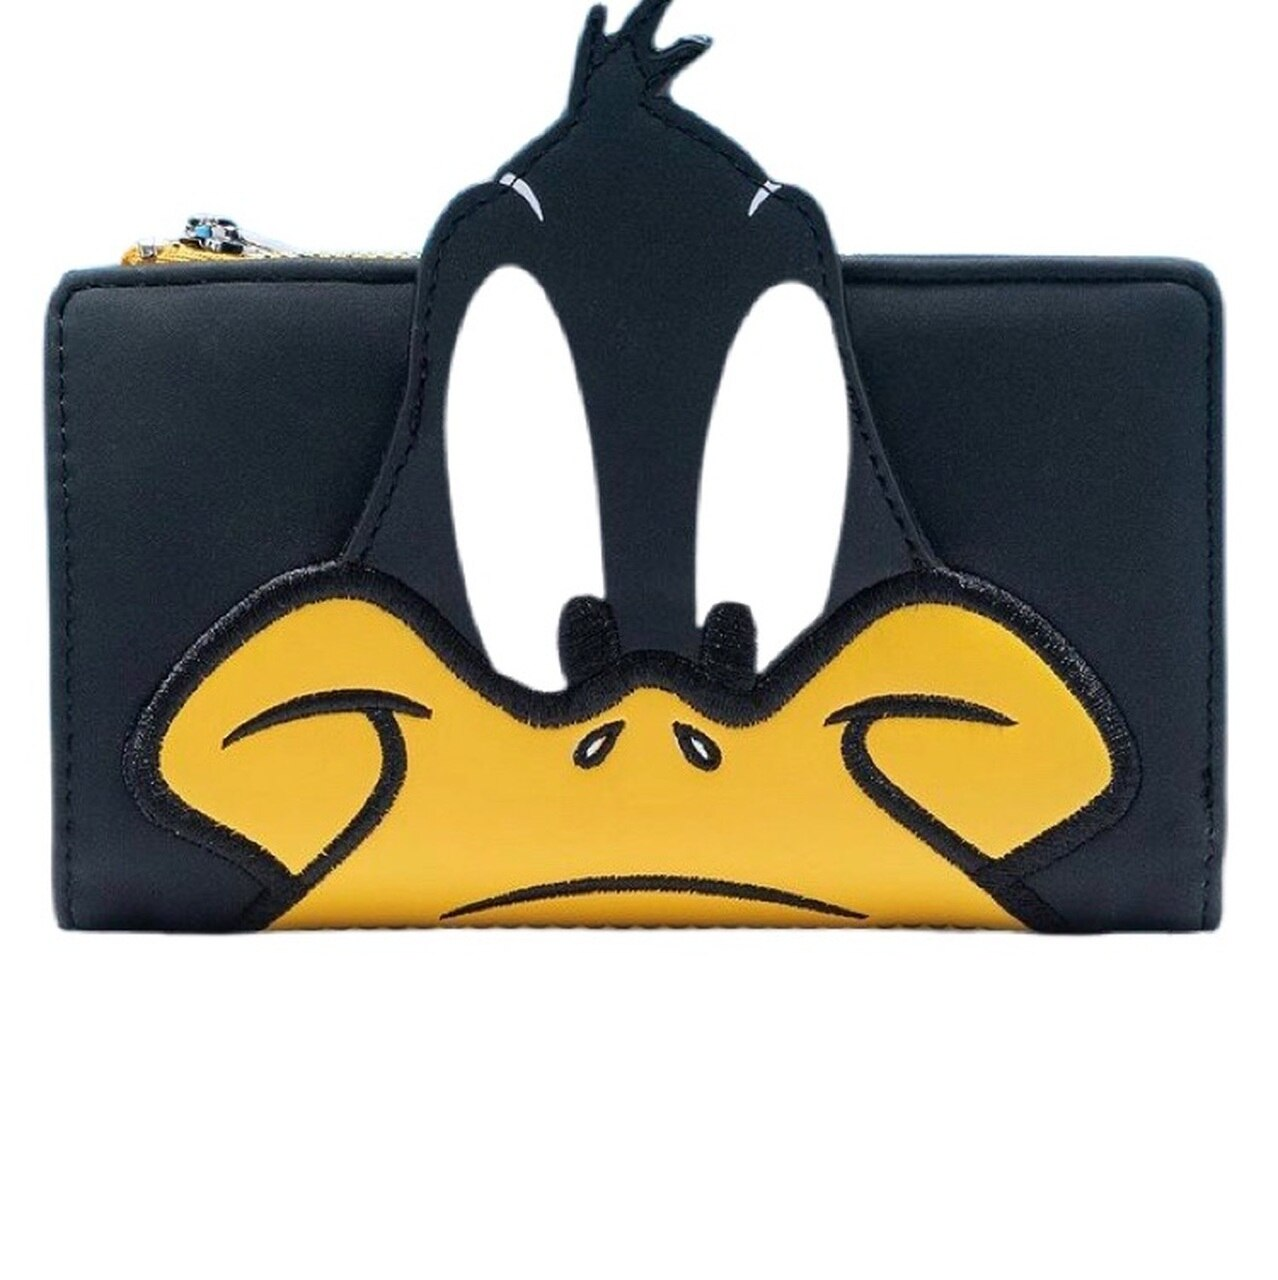 Looney Tunes - Loungefly : Porte feuille Daffy Duck